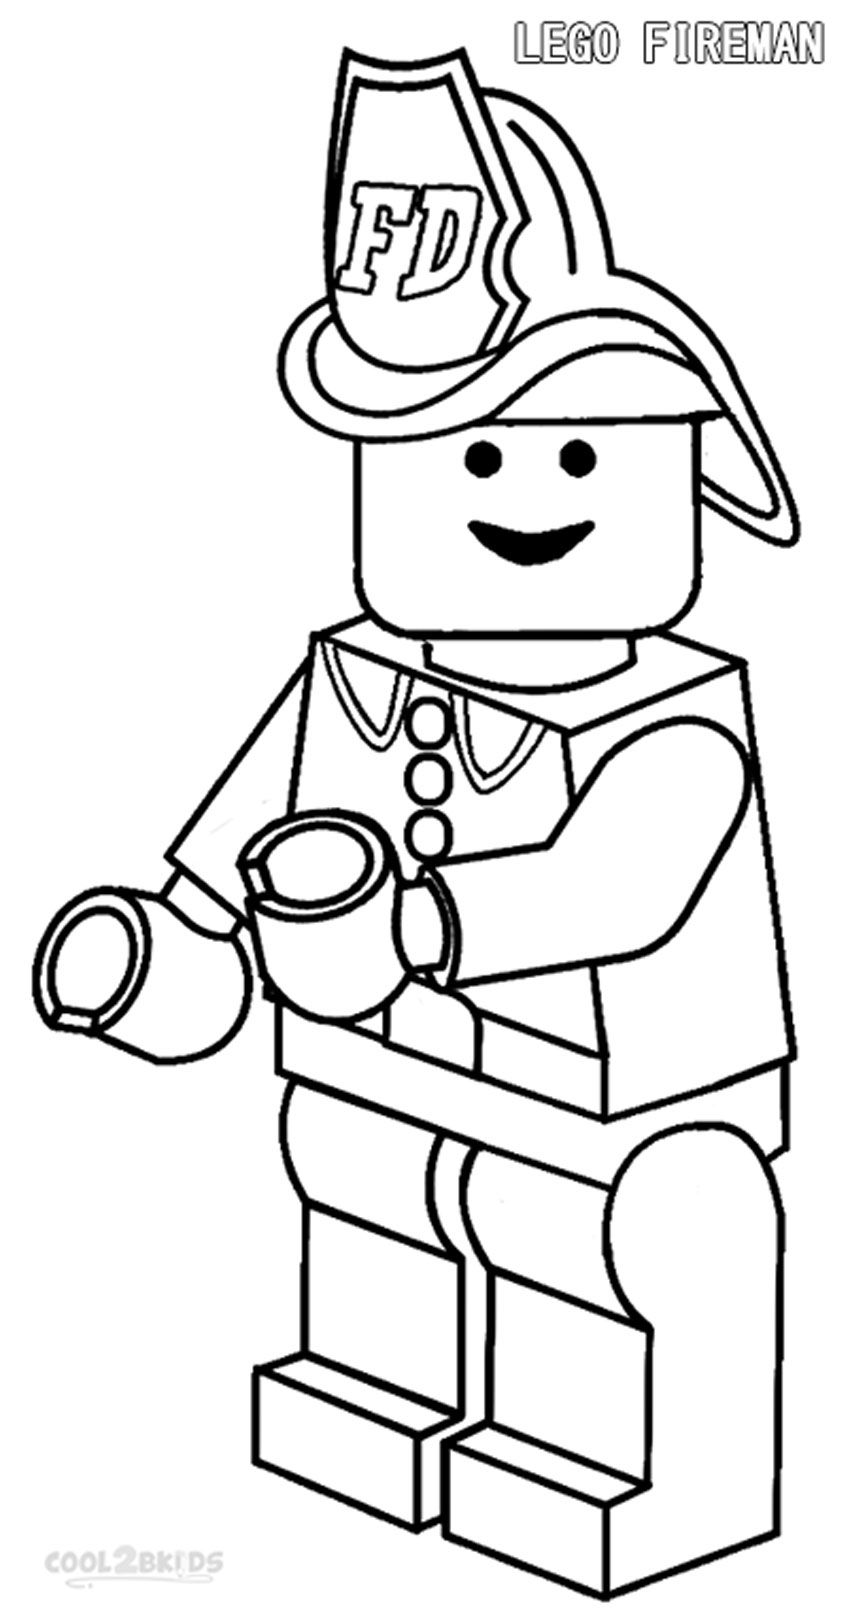 fire man coloring pages - photo#7